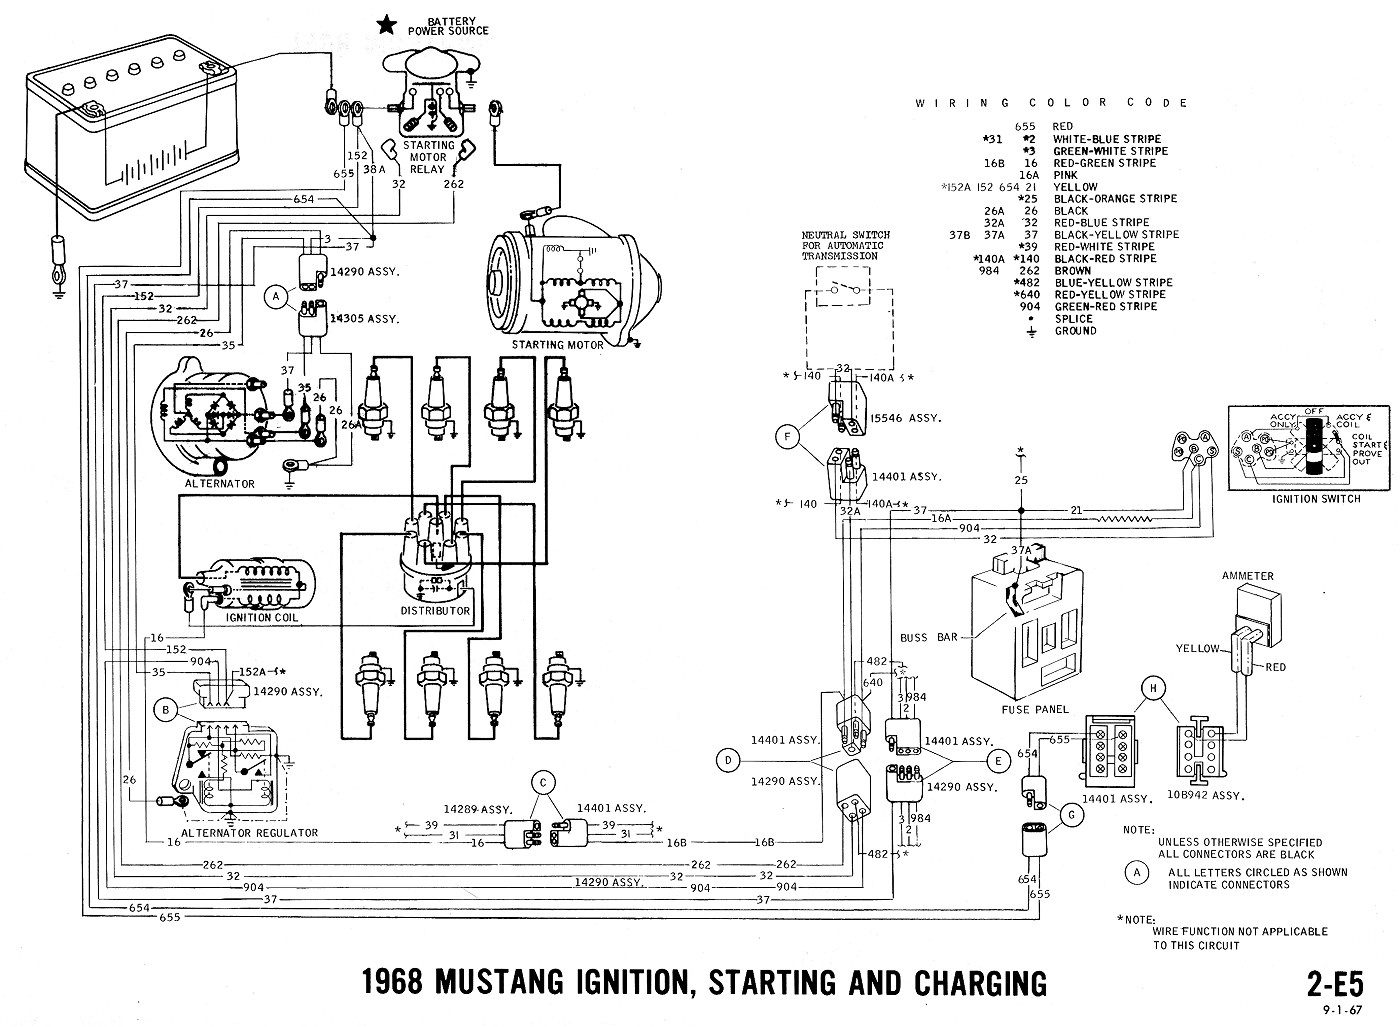 1968 mustang wiring diagrams evolving software rh peterfranza com 1997 Mustang Wiring Diagram 2011 Mustang Wiring Diagram